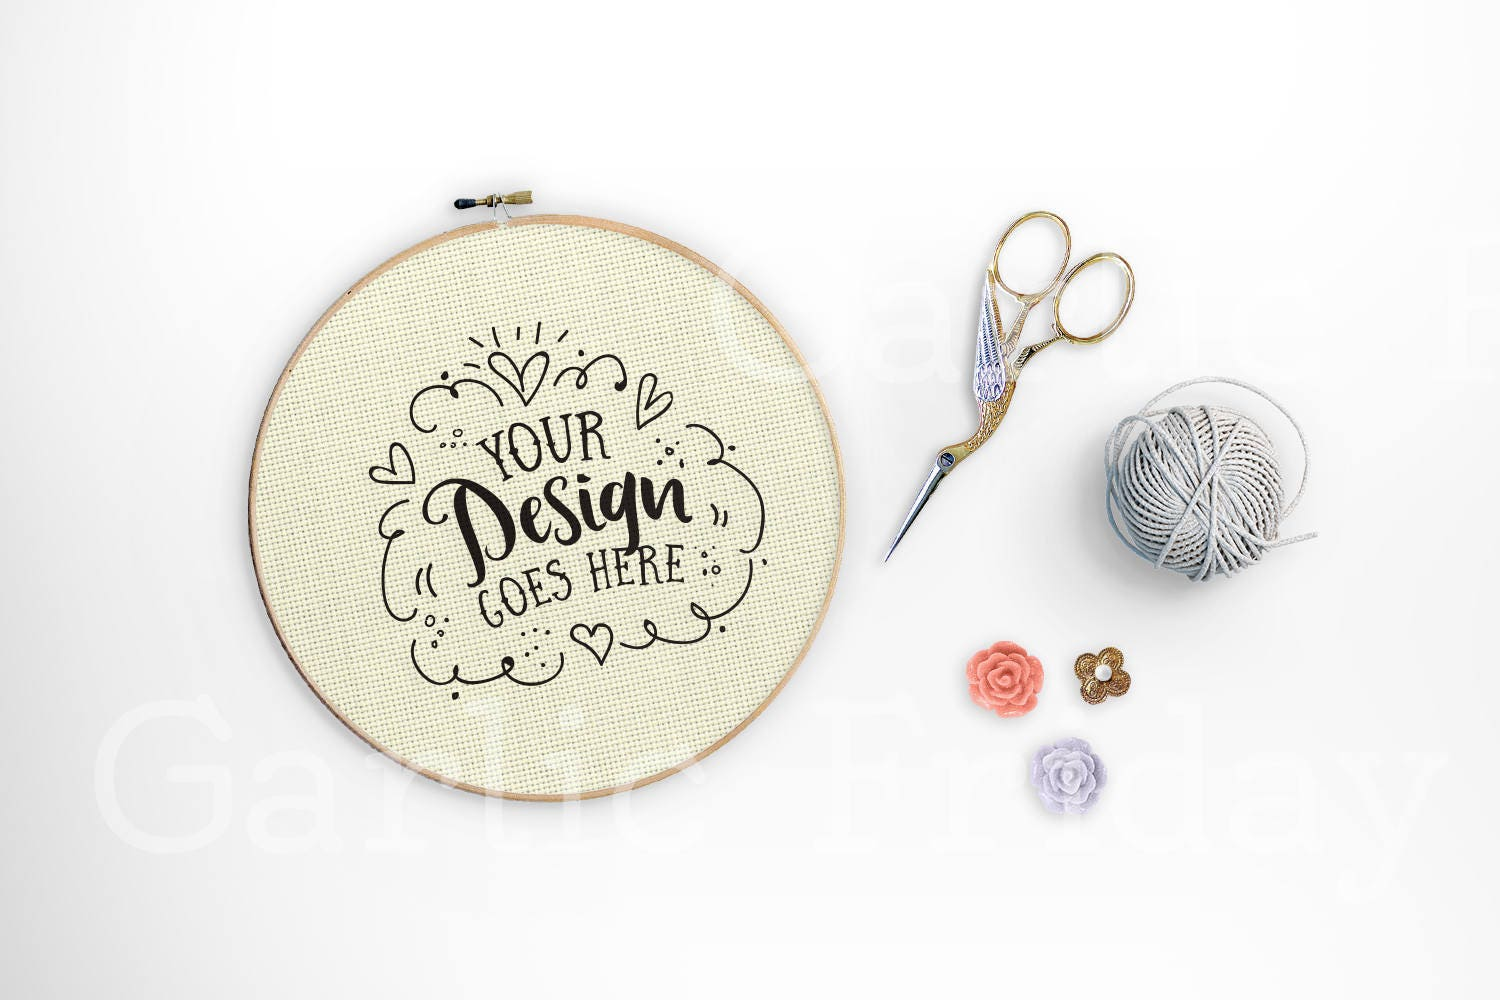 Embroidery Hoop Mockup With Psd Cross Stitch Craft Flatlay Etsy